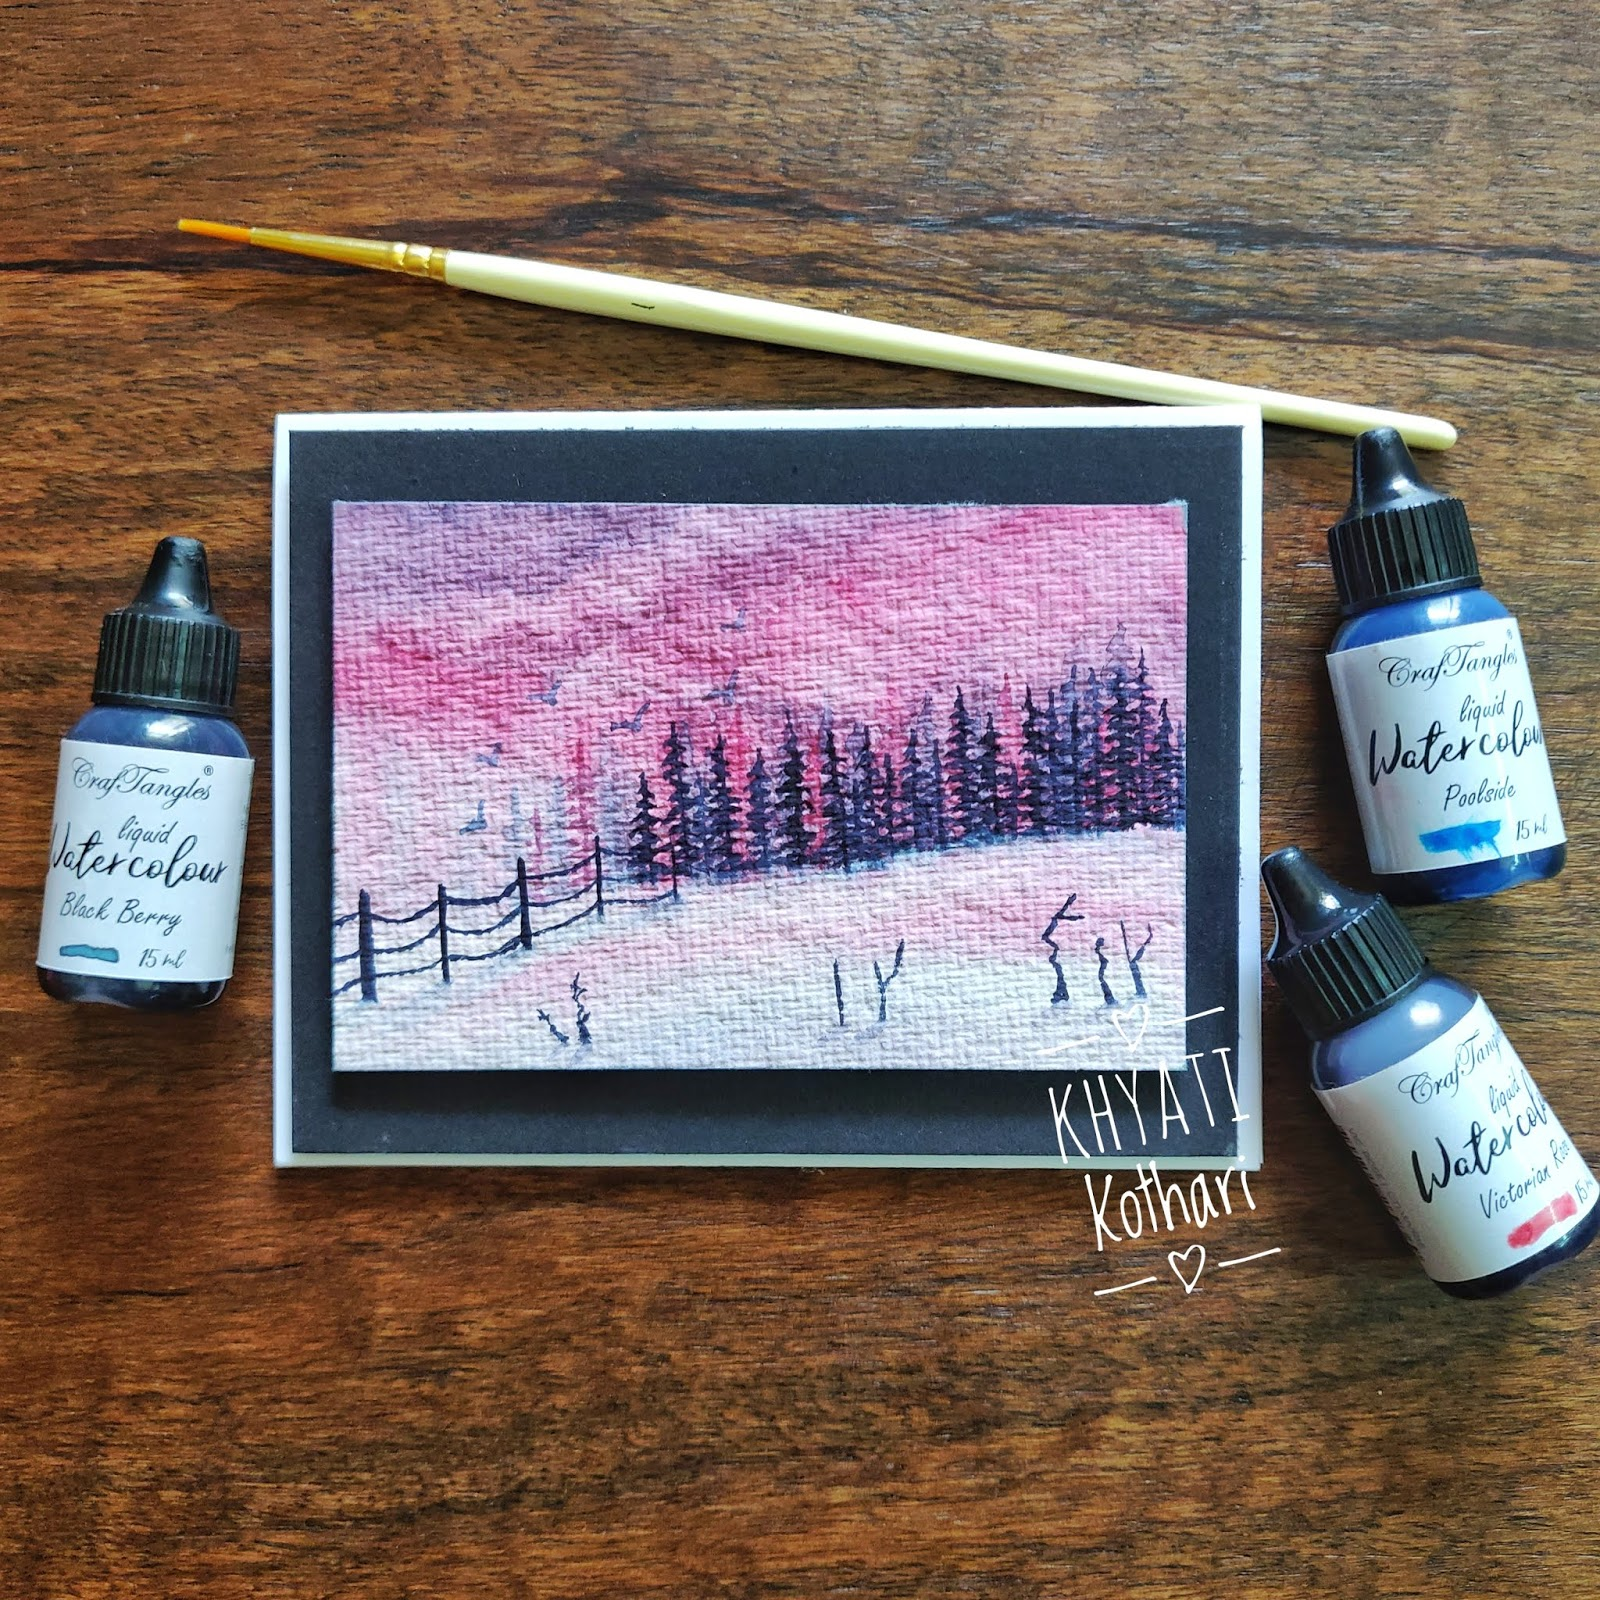 CrafTangles April Challenege inspirations by Khyati using liquid watercolors 8